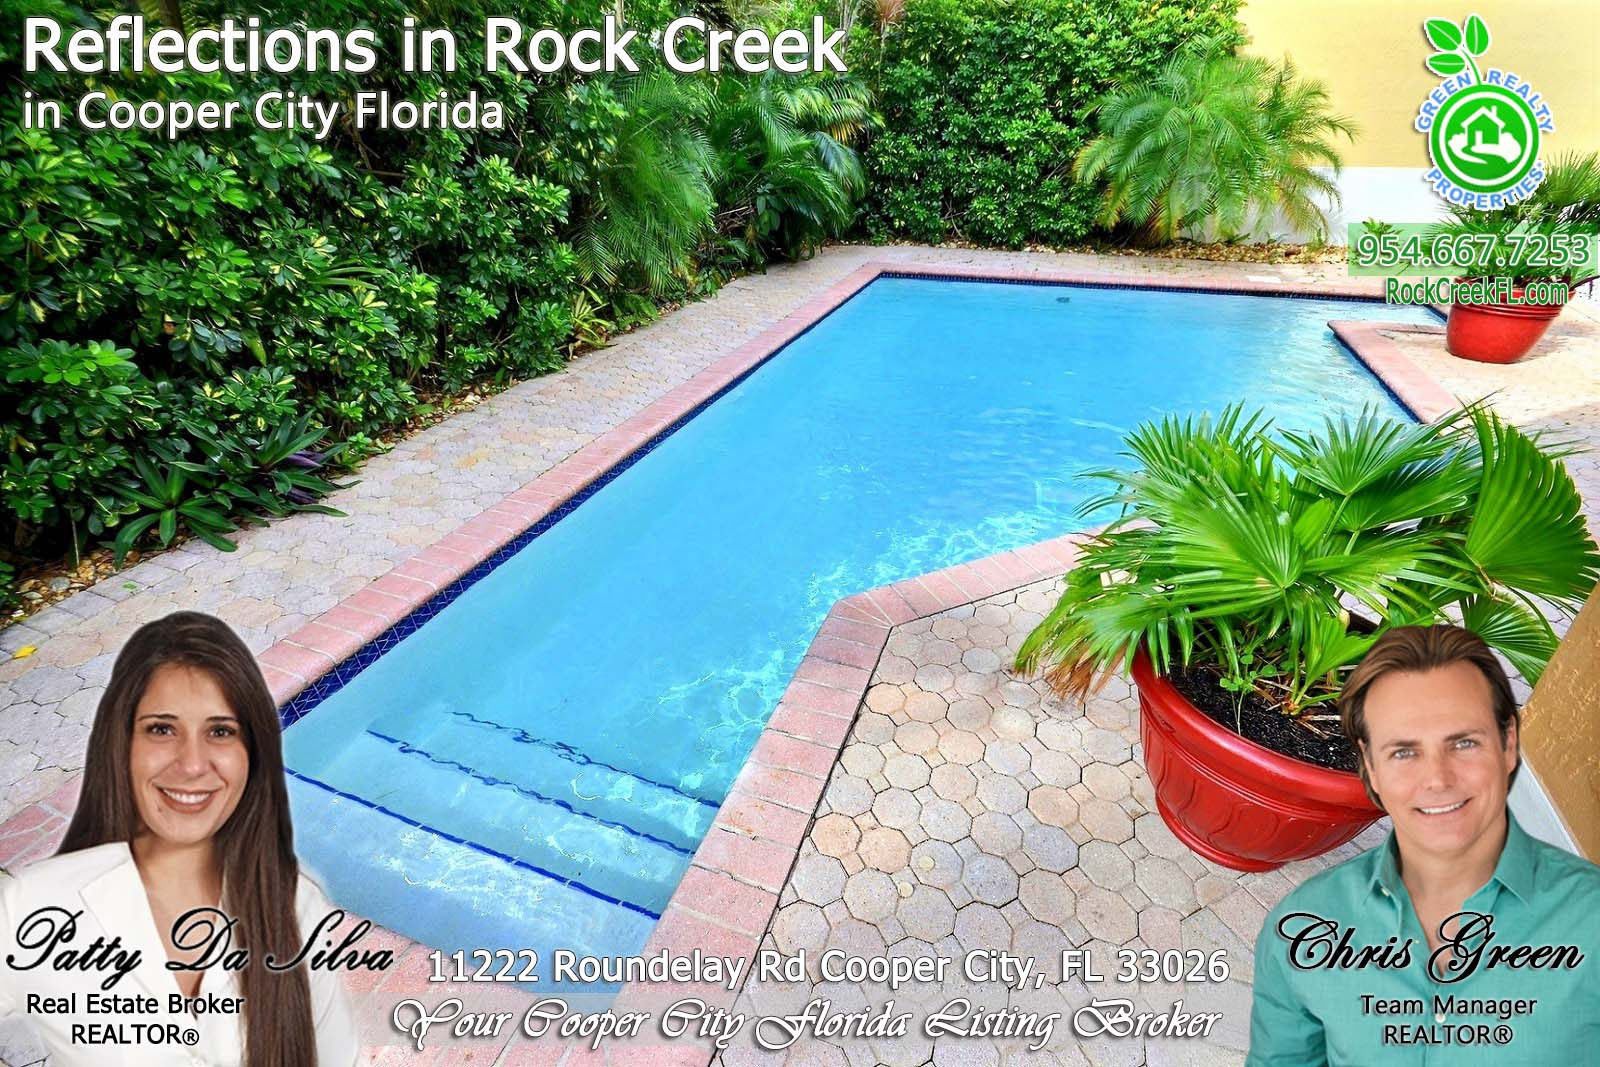 Cooper City Homes For Sale - Reflections in Rock Creek Homes Fo Sale (6)